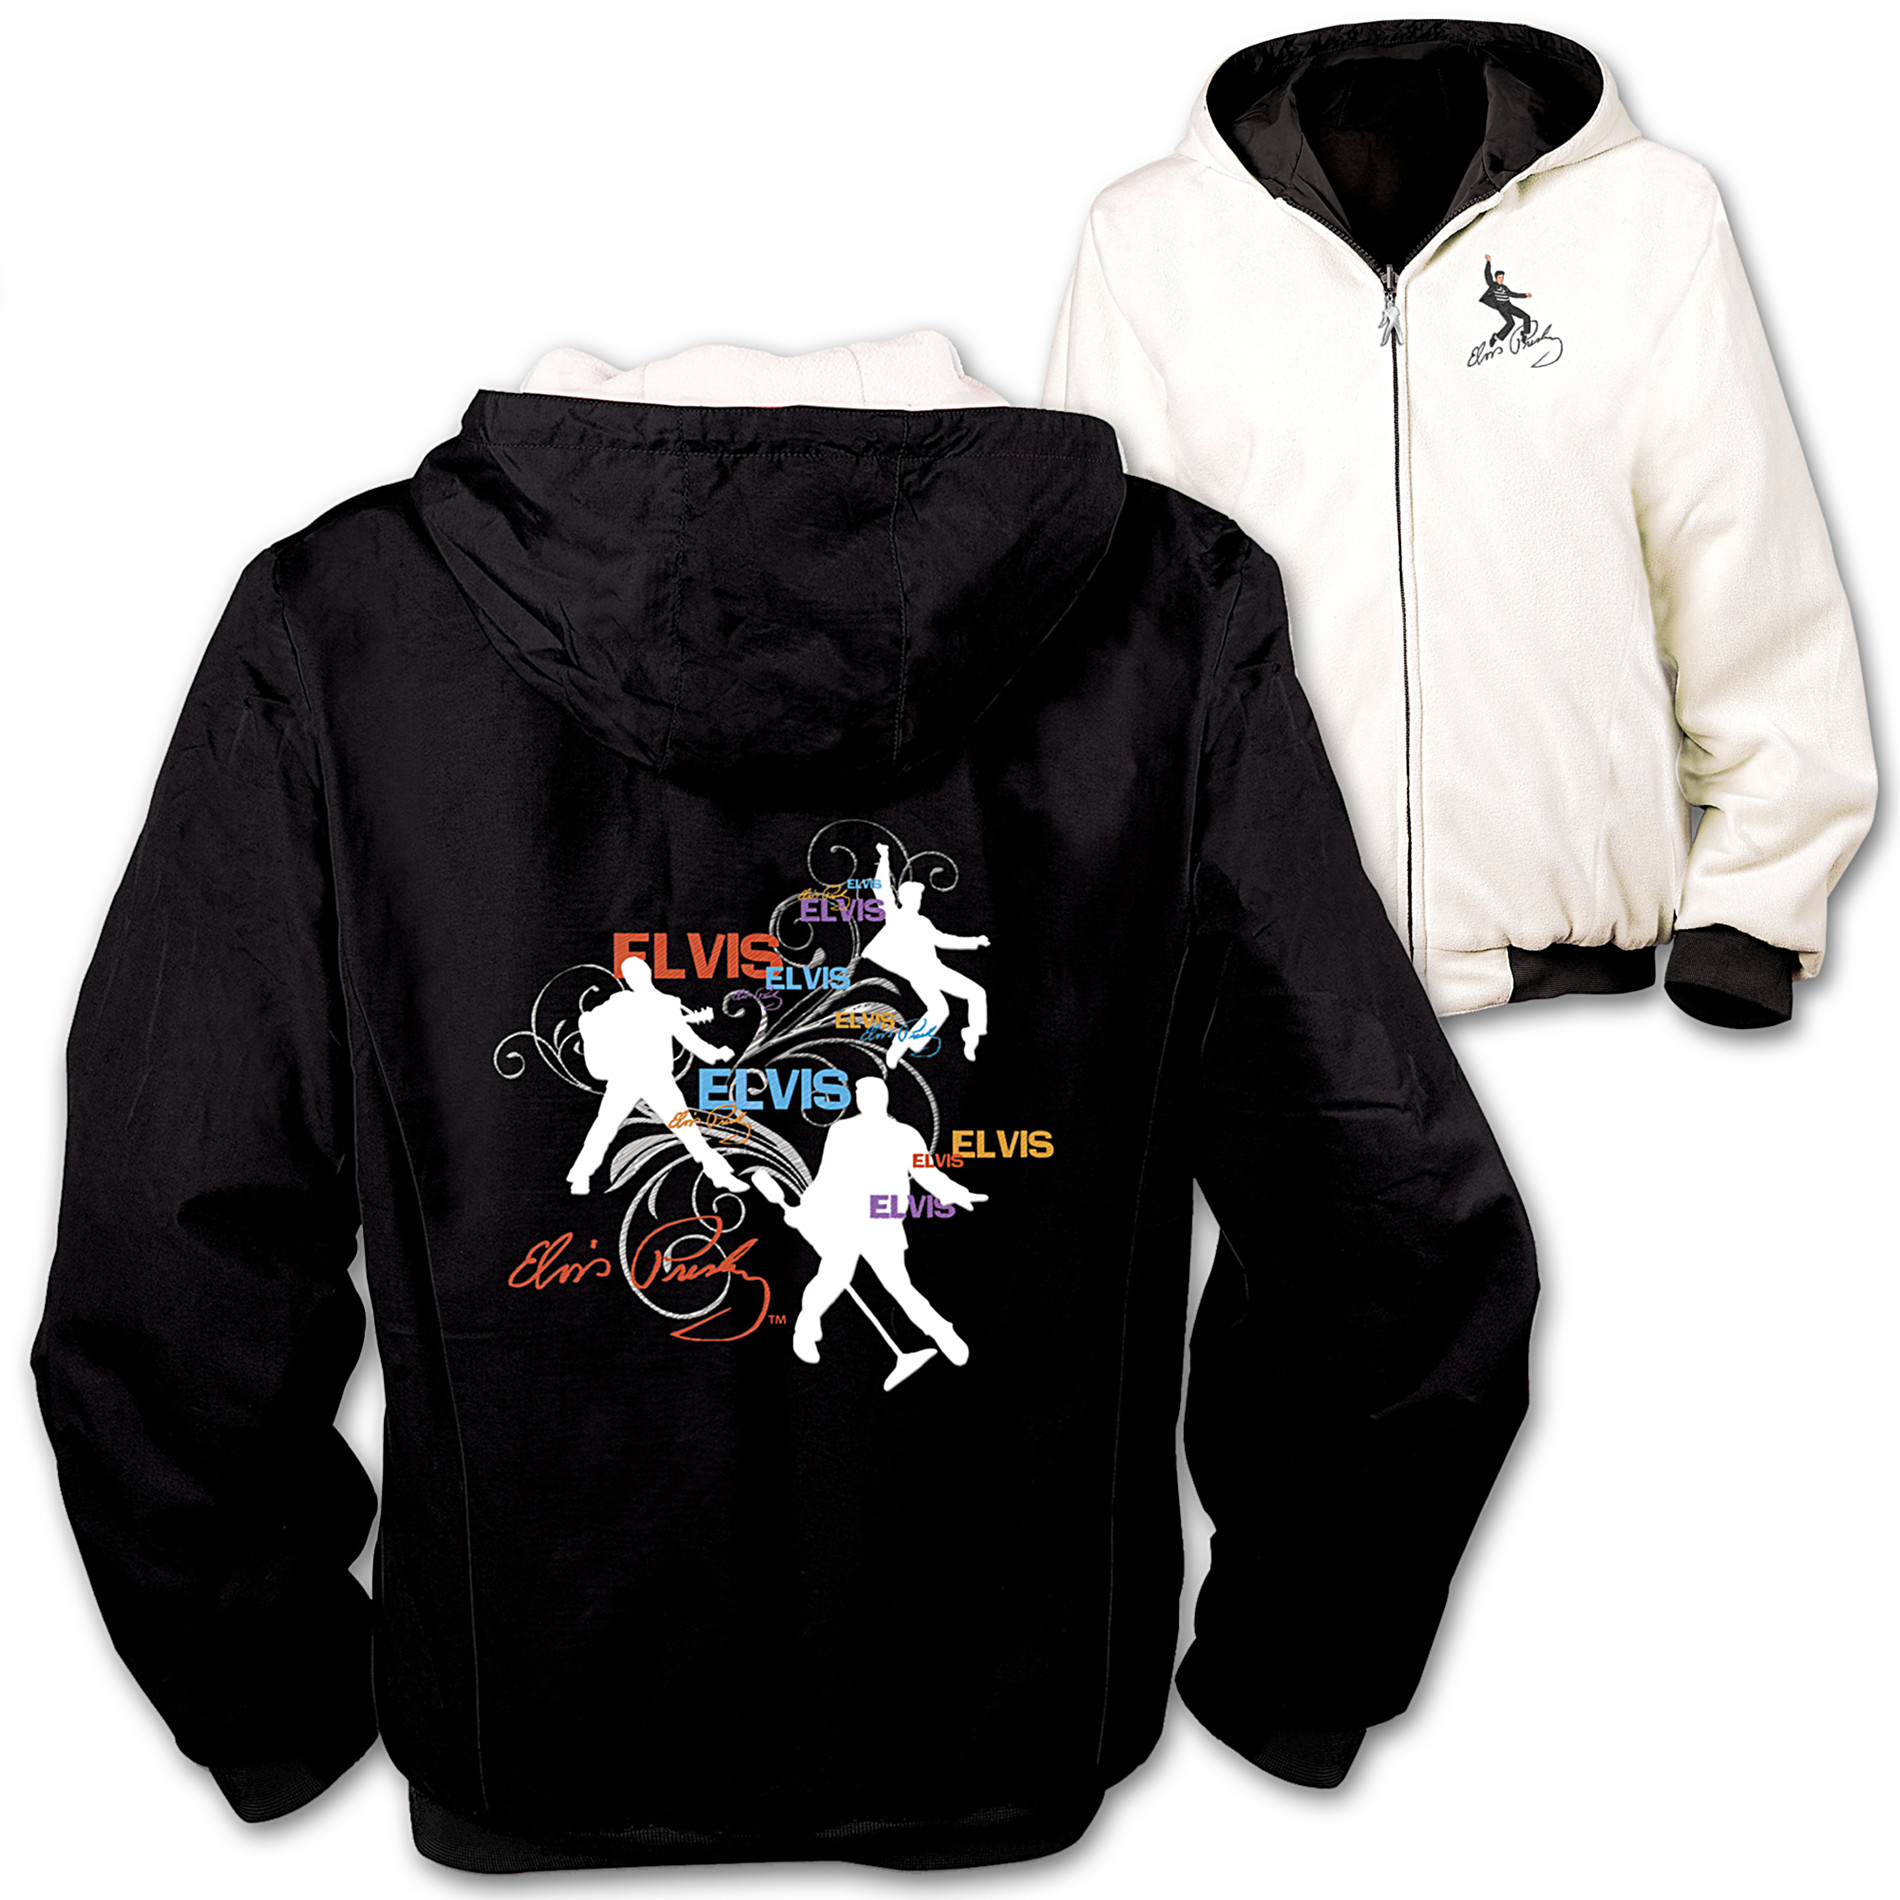 The Bradford Exchange Elvis Presley Reversible Women's Jacket: On The Flip Side at Sears.com